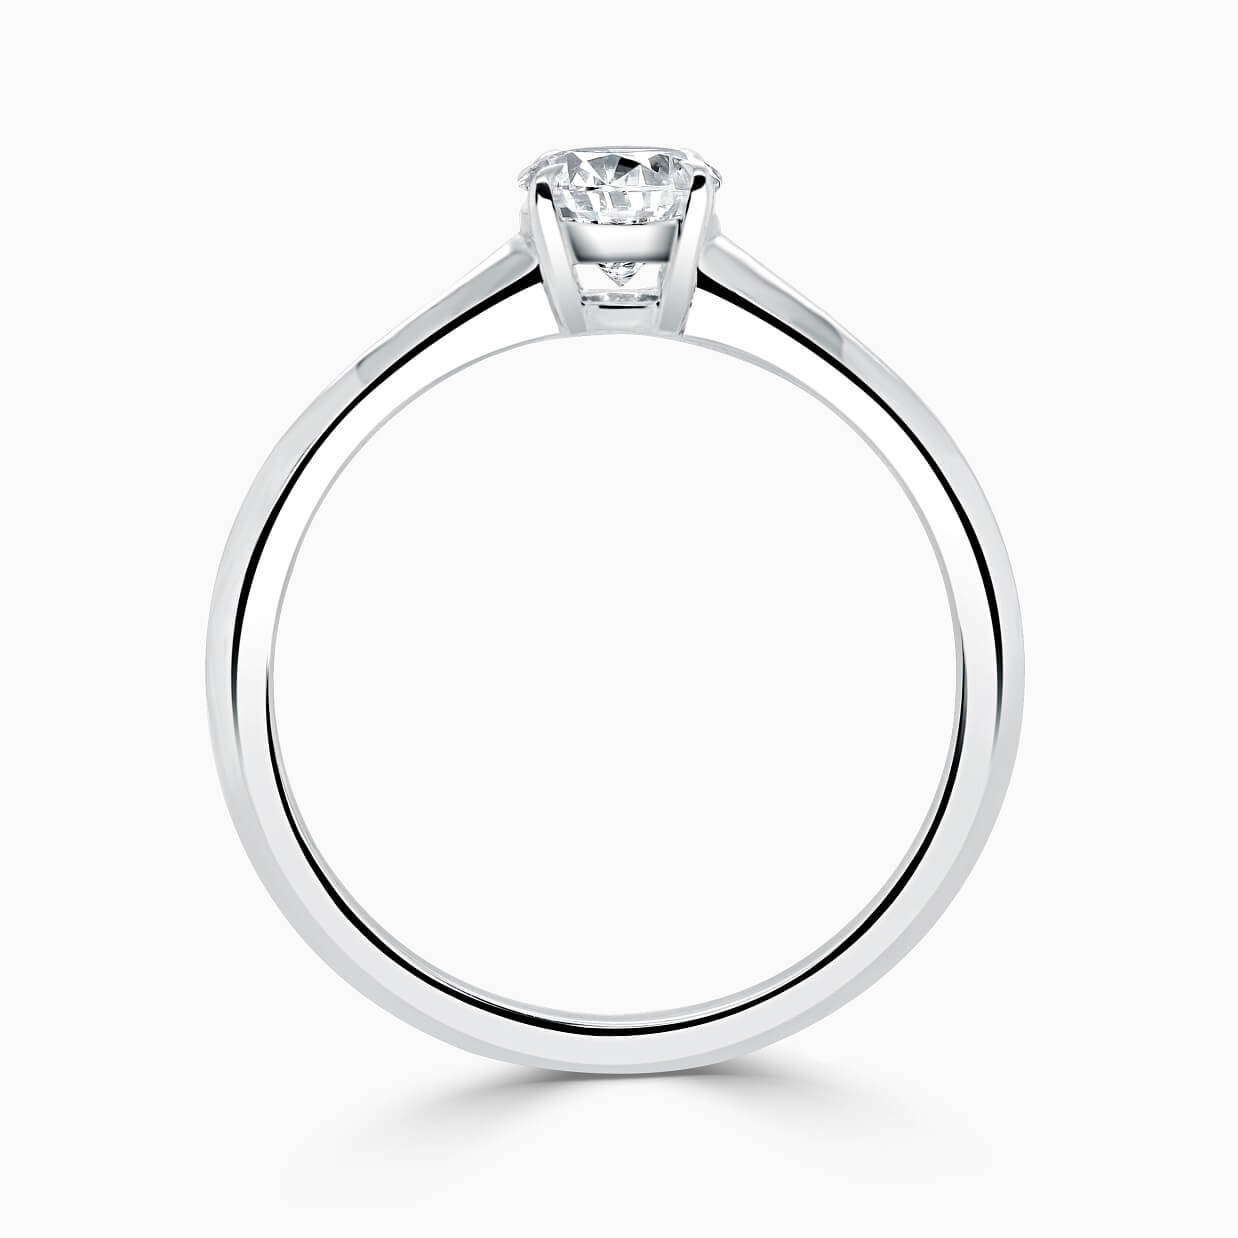 18ct White Gold Oval Shape Basket With Taper Engagement Ring